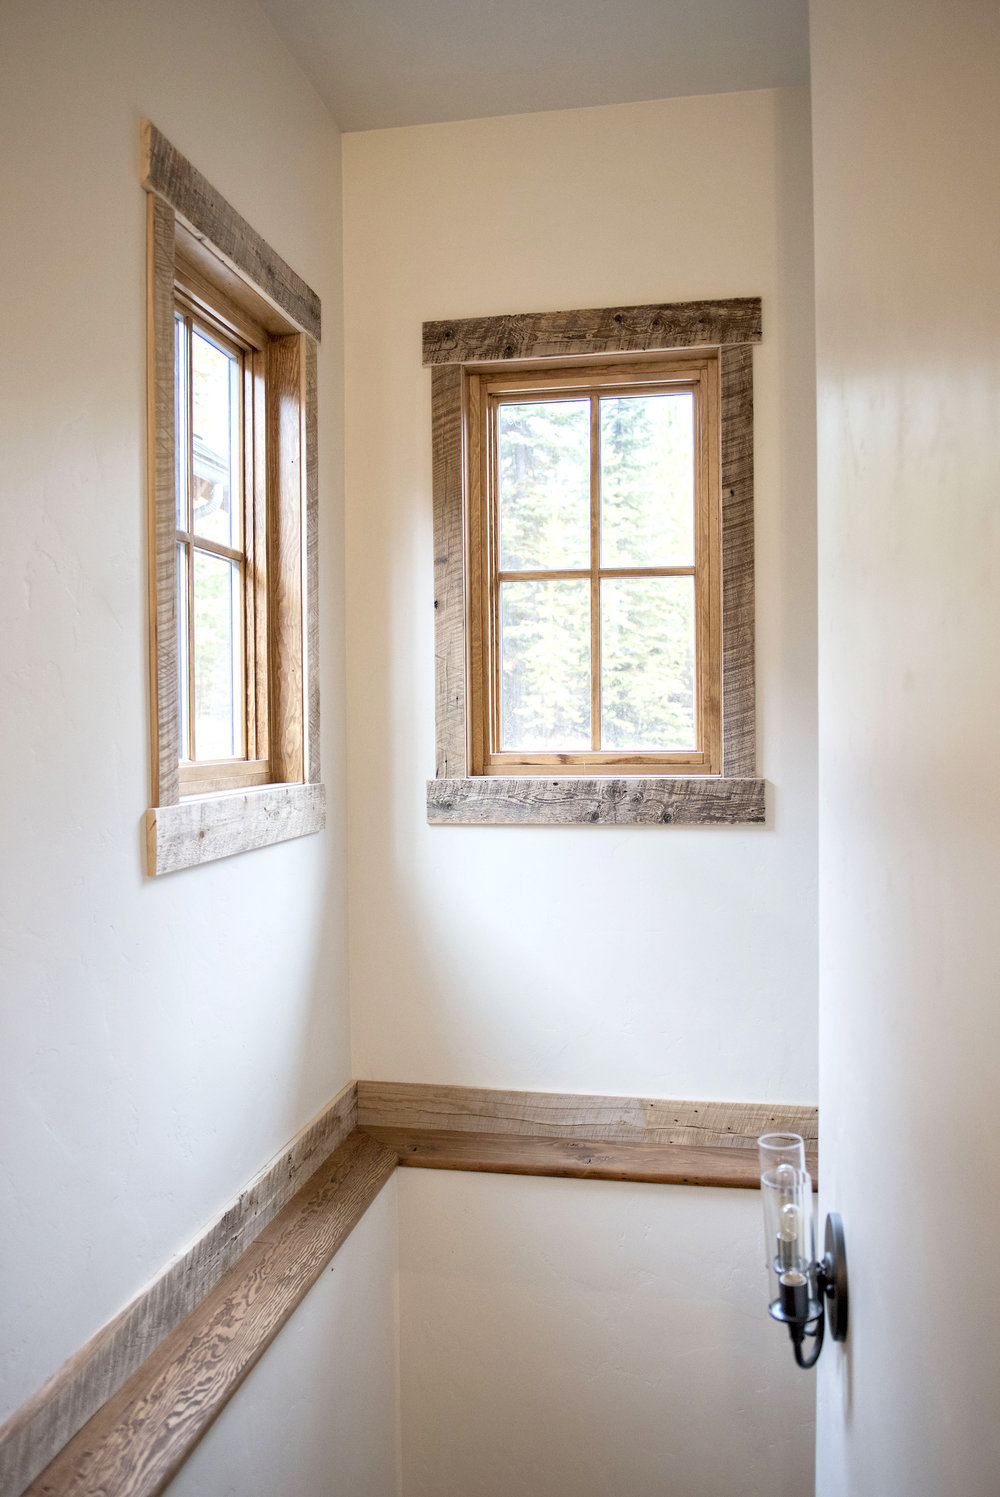 Adding reclaimed trim to interior doors & windows is a simple way to make your space unique or tie in material from an accent wall or ceiling. This trim compliments the material that was used for the ceiling in the main room of the house.